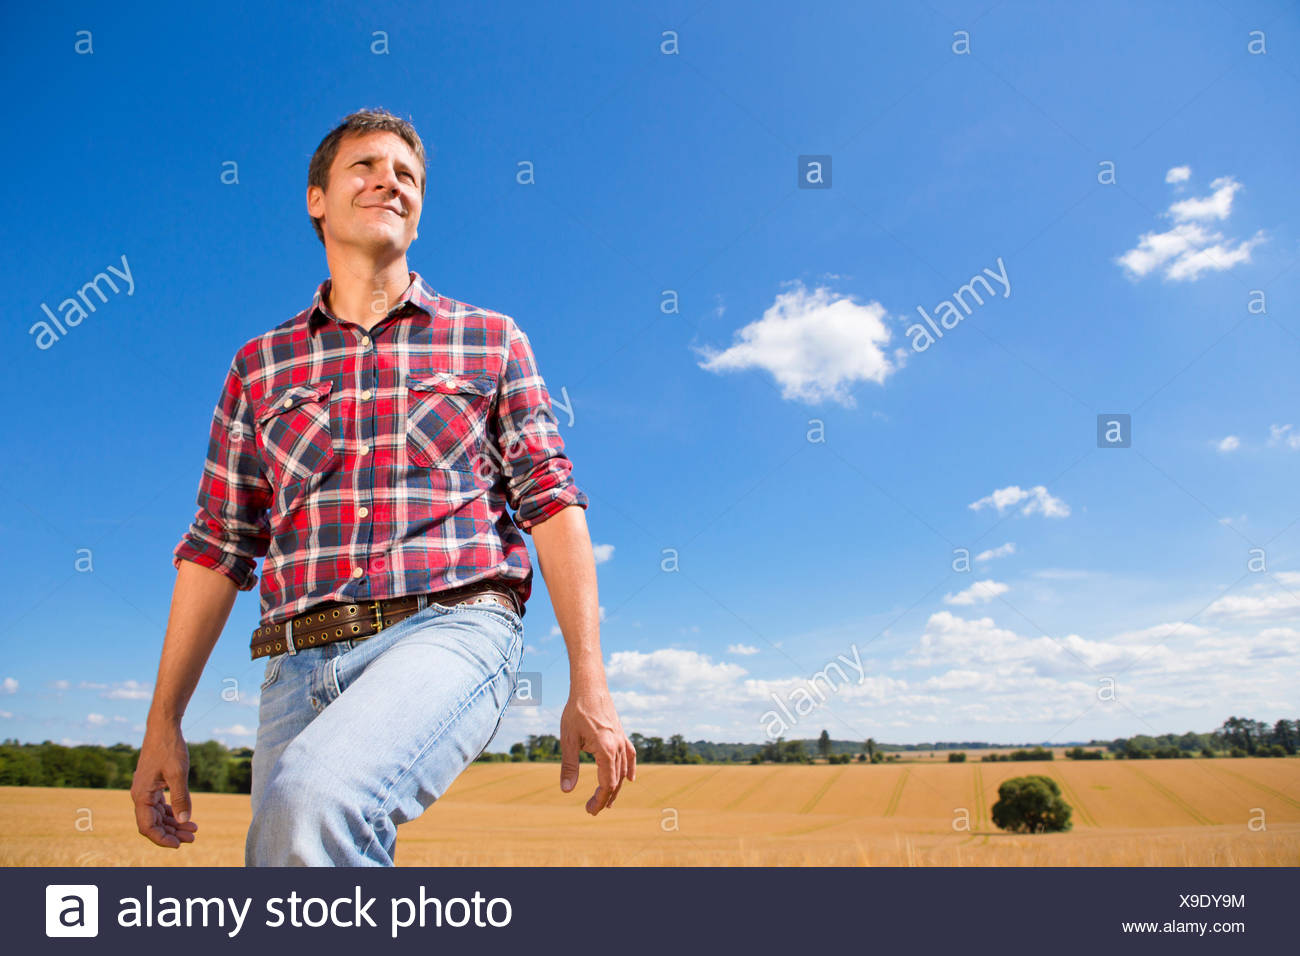 Smiling farmer walking in sunny rural barley crop field in summer - Stock Image